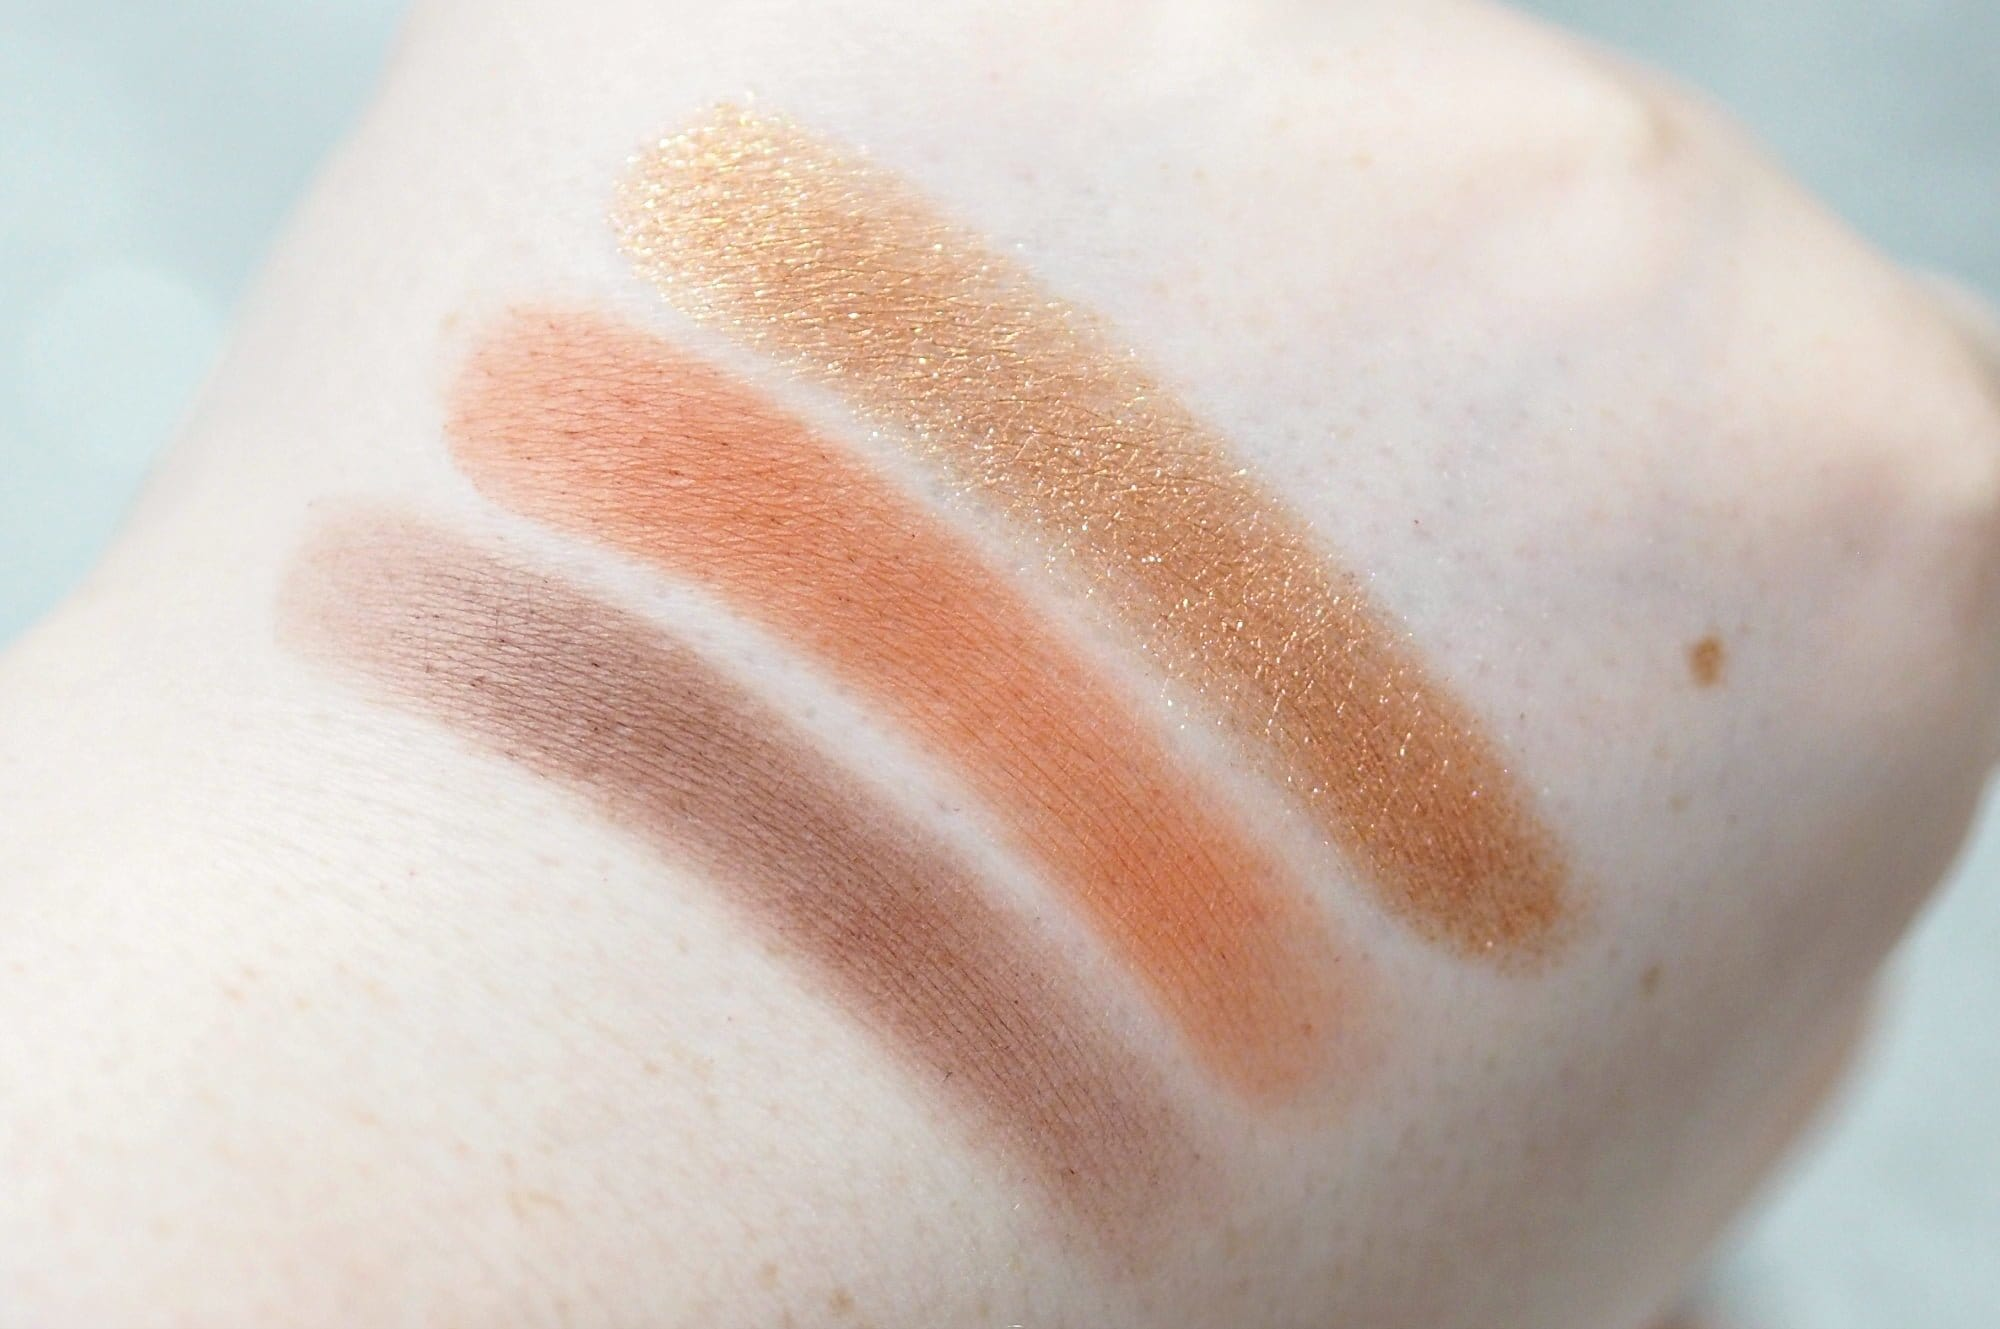 Huda Beauty Topaz Obsessions Eyeshadow Palette Review / Swatches